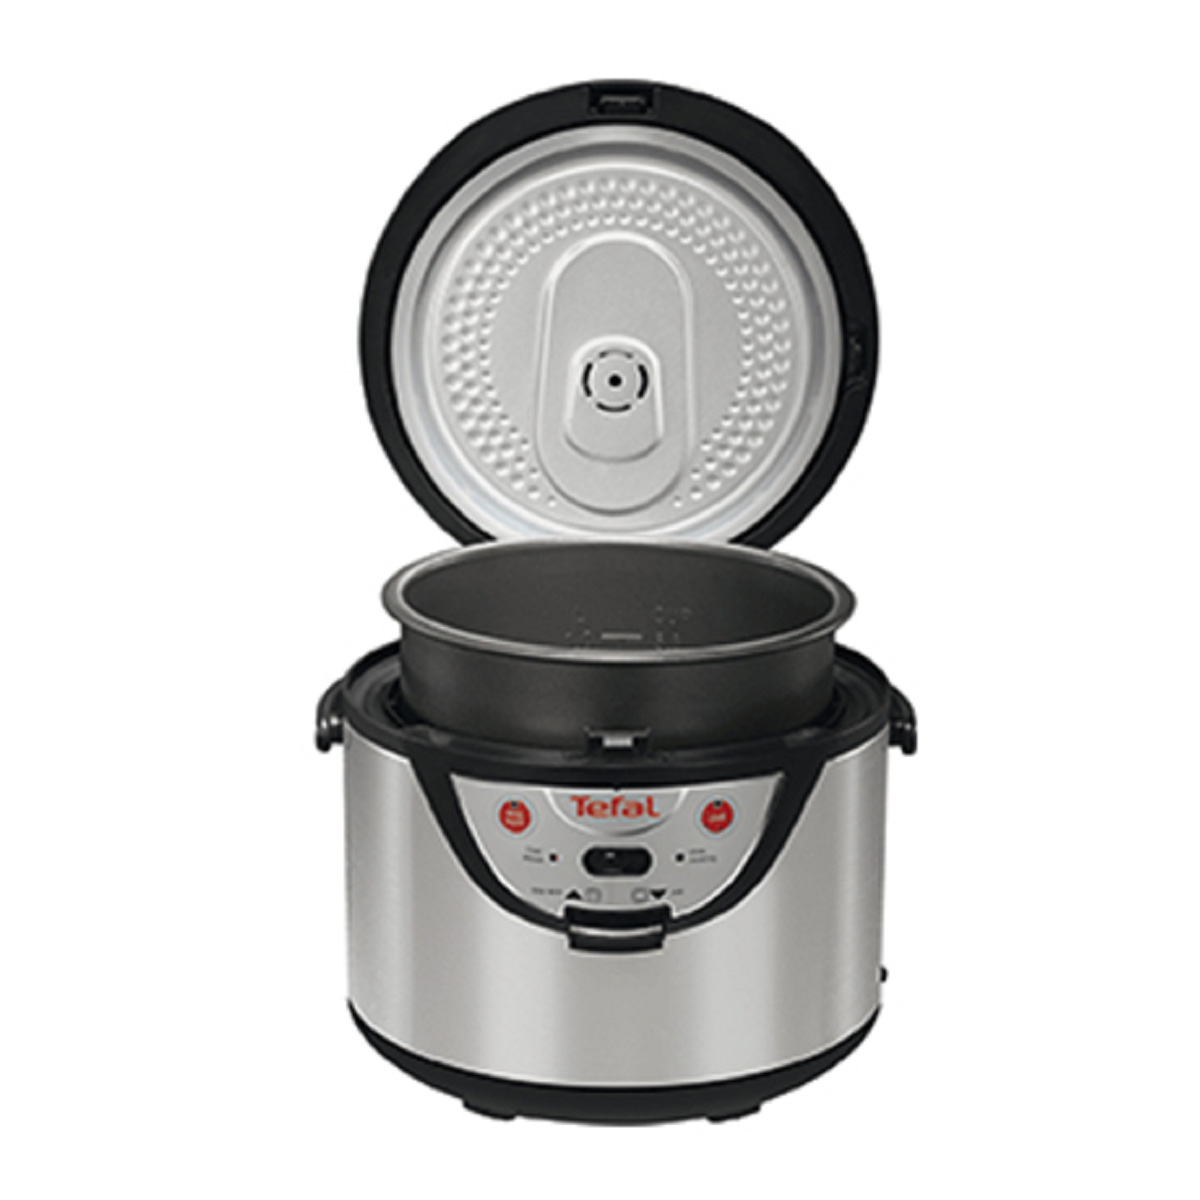 tefal rice cooker instruction manual